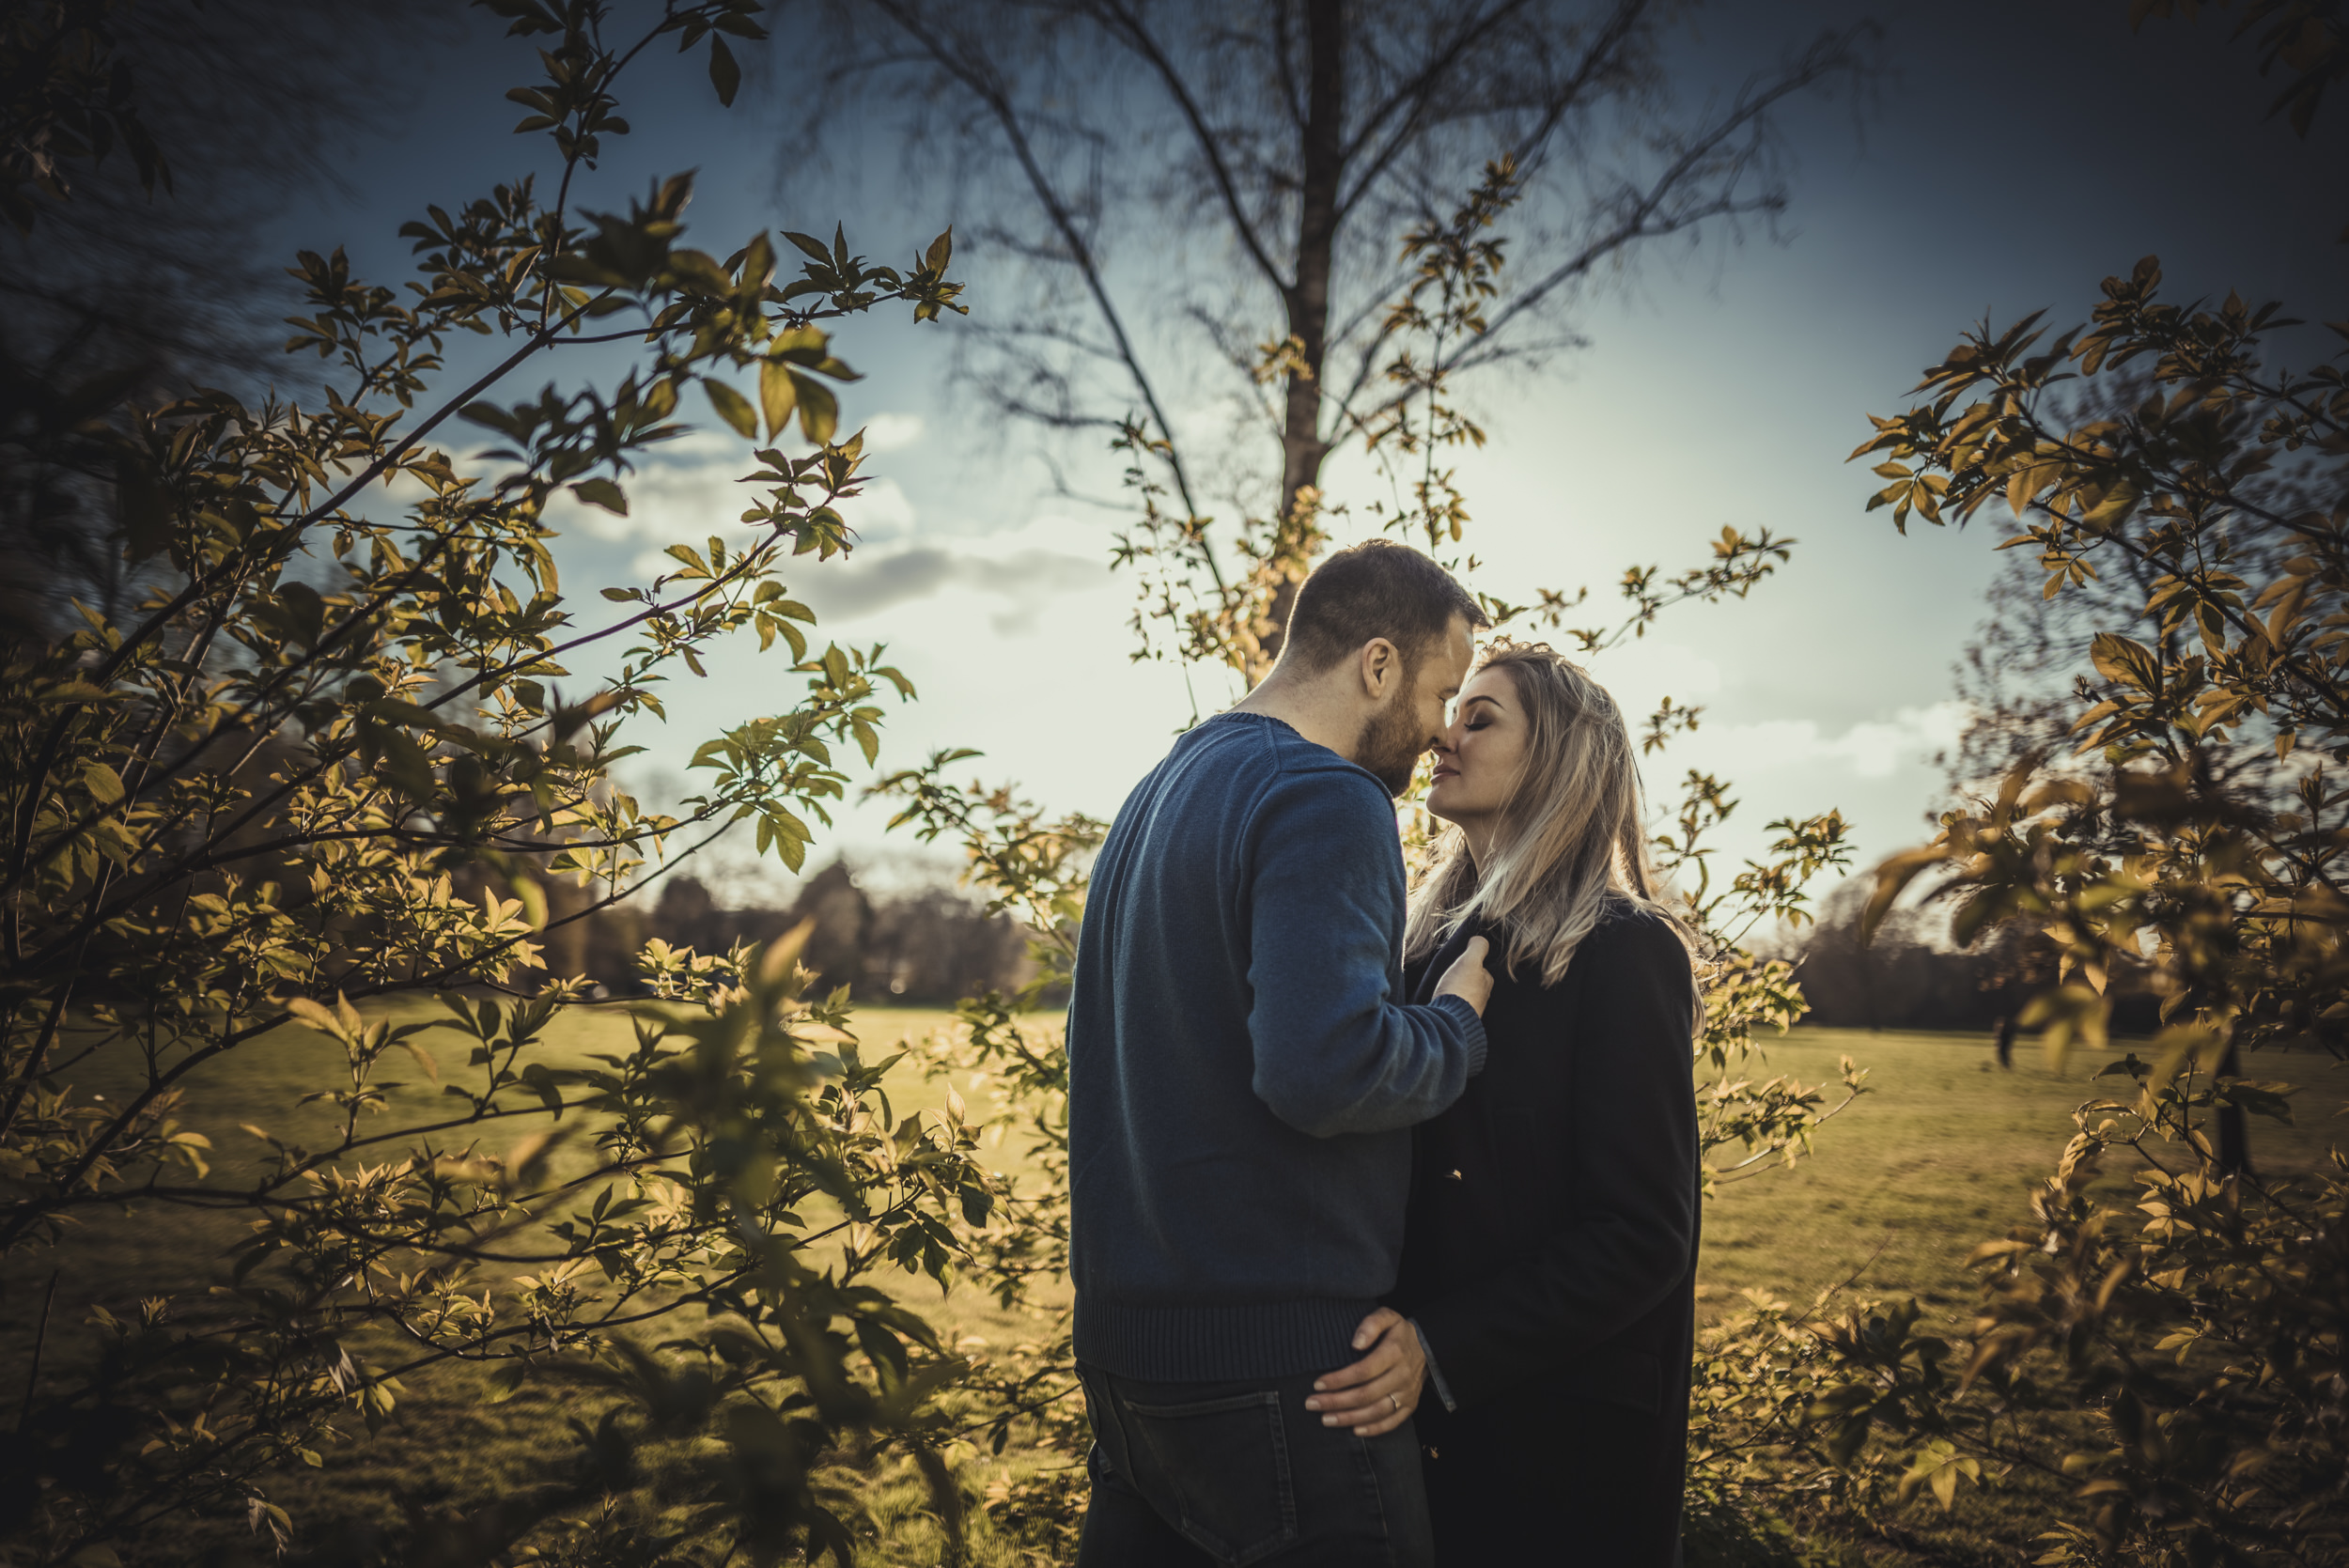 Hannah-and-James-Engagement-Session-Henley-on-Thames-Oxfordshire-Manu-Mendoza-Wedding-Photography-015.jpg